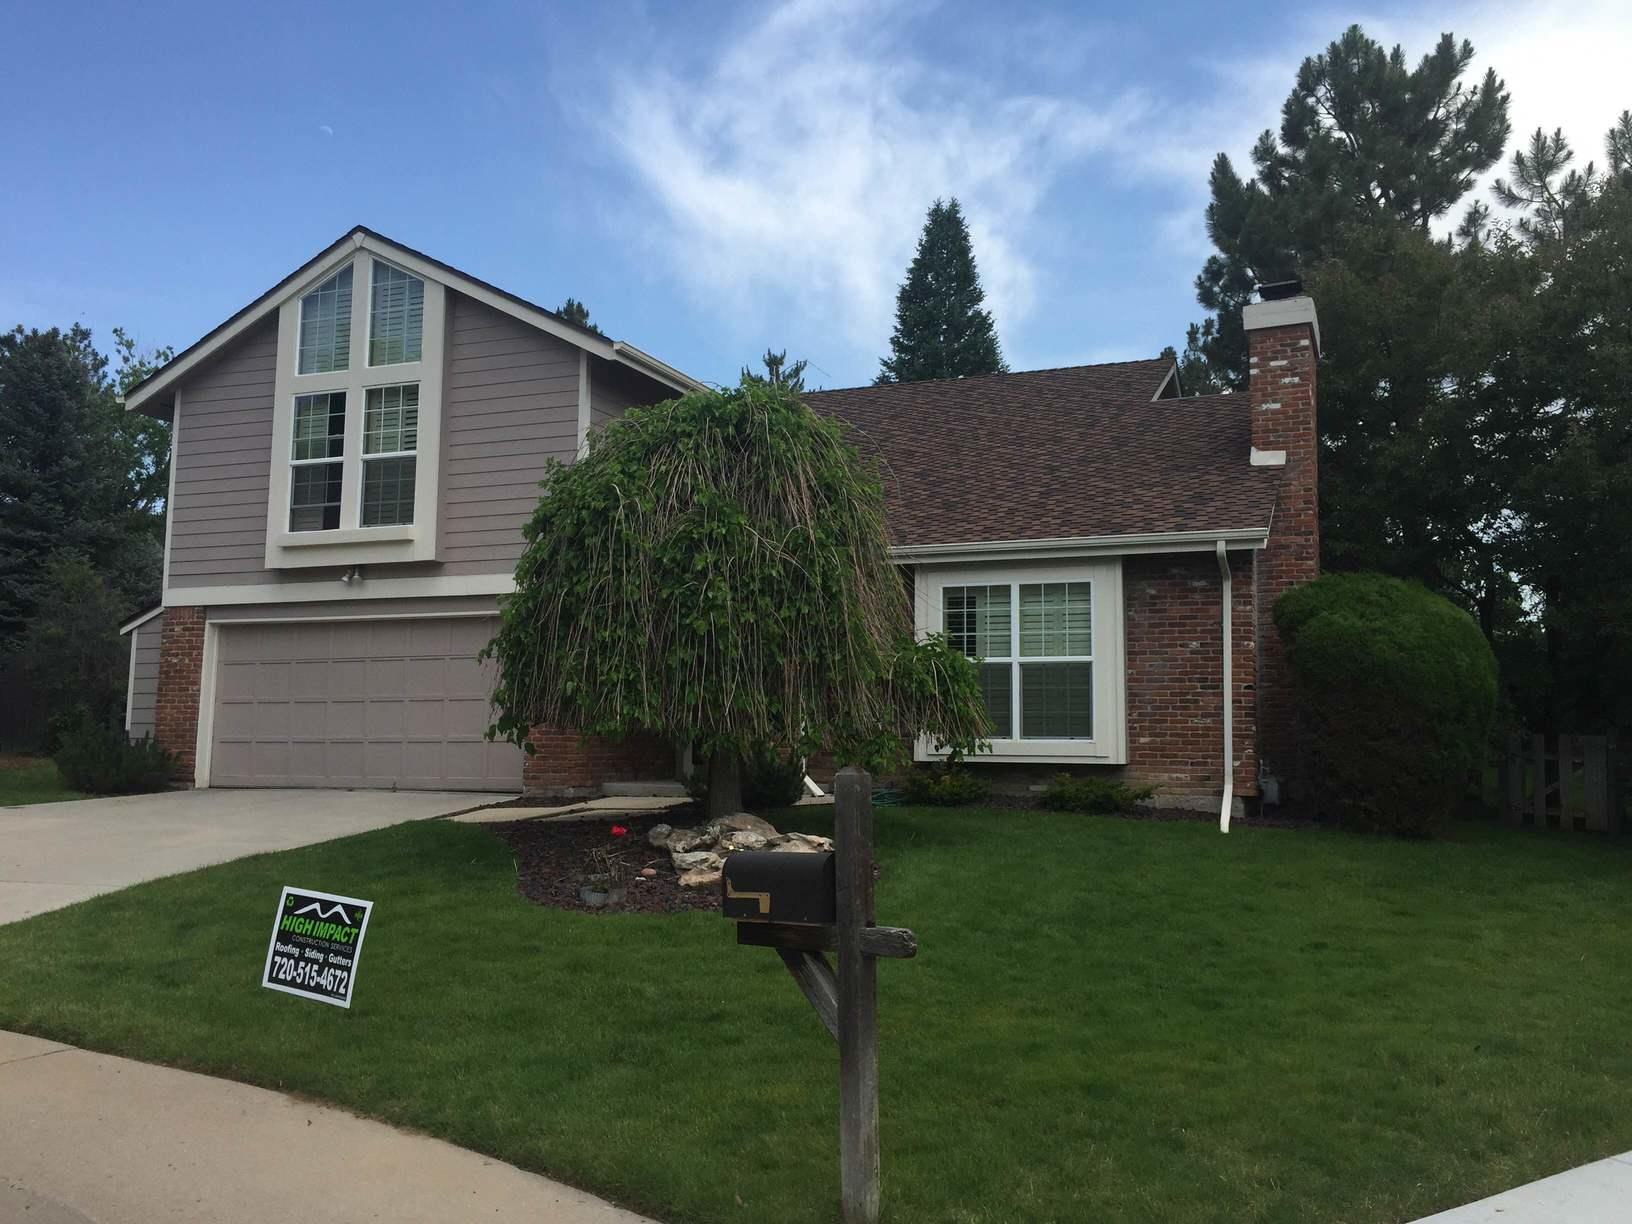 Roof Replacement in Centennial, featuring Shaker Shingles - After Photo